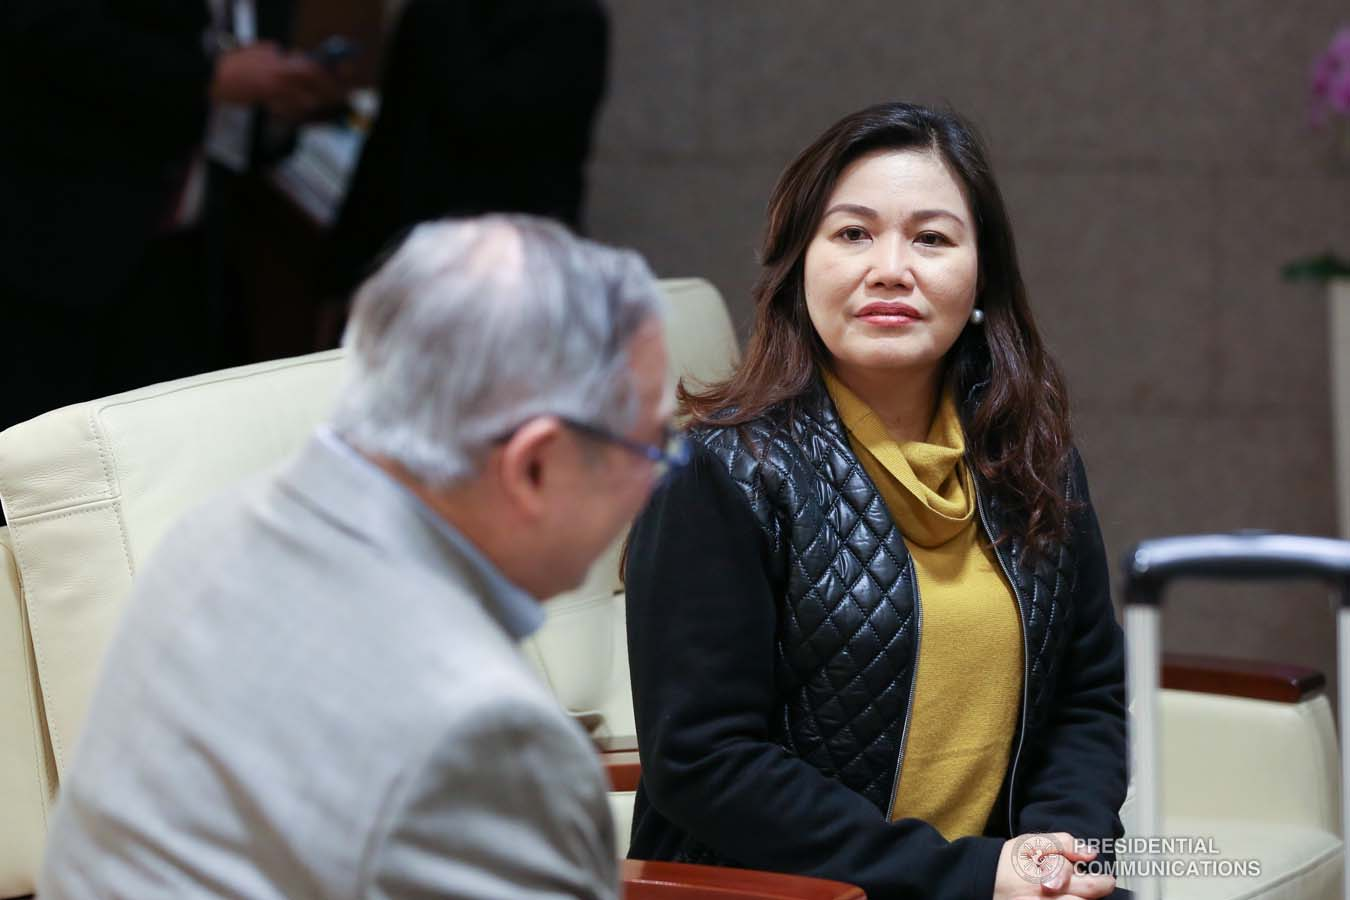 President Rodrigo Roa Duterte's partner Cielito Avanceña chats with Foreign Affairs Secretary Teodoro Locsin Jr. as she prepares to leave for Manila after joining the President in various events during the Association of Southeast Asian Nations (ASEAN)-Republic of Korea Commemorative Summit in Busan on November 26, 2019. RICHARD MADELO/PRESIDENTIAL PHOTO